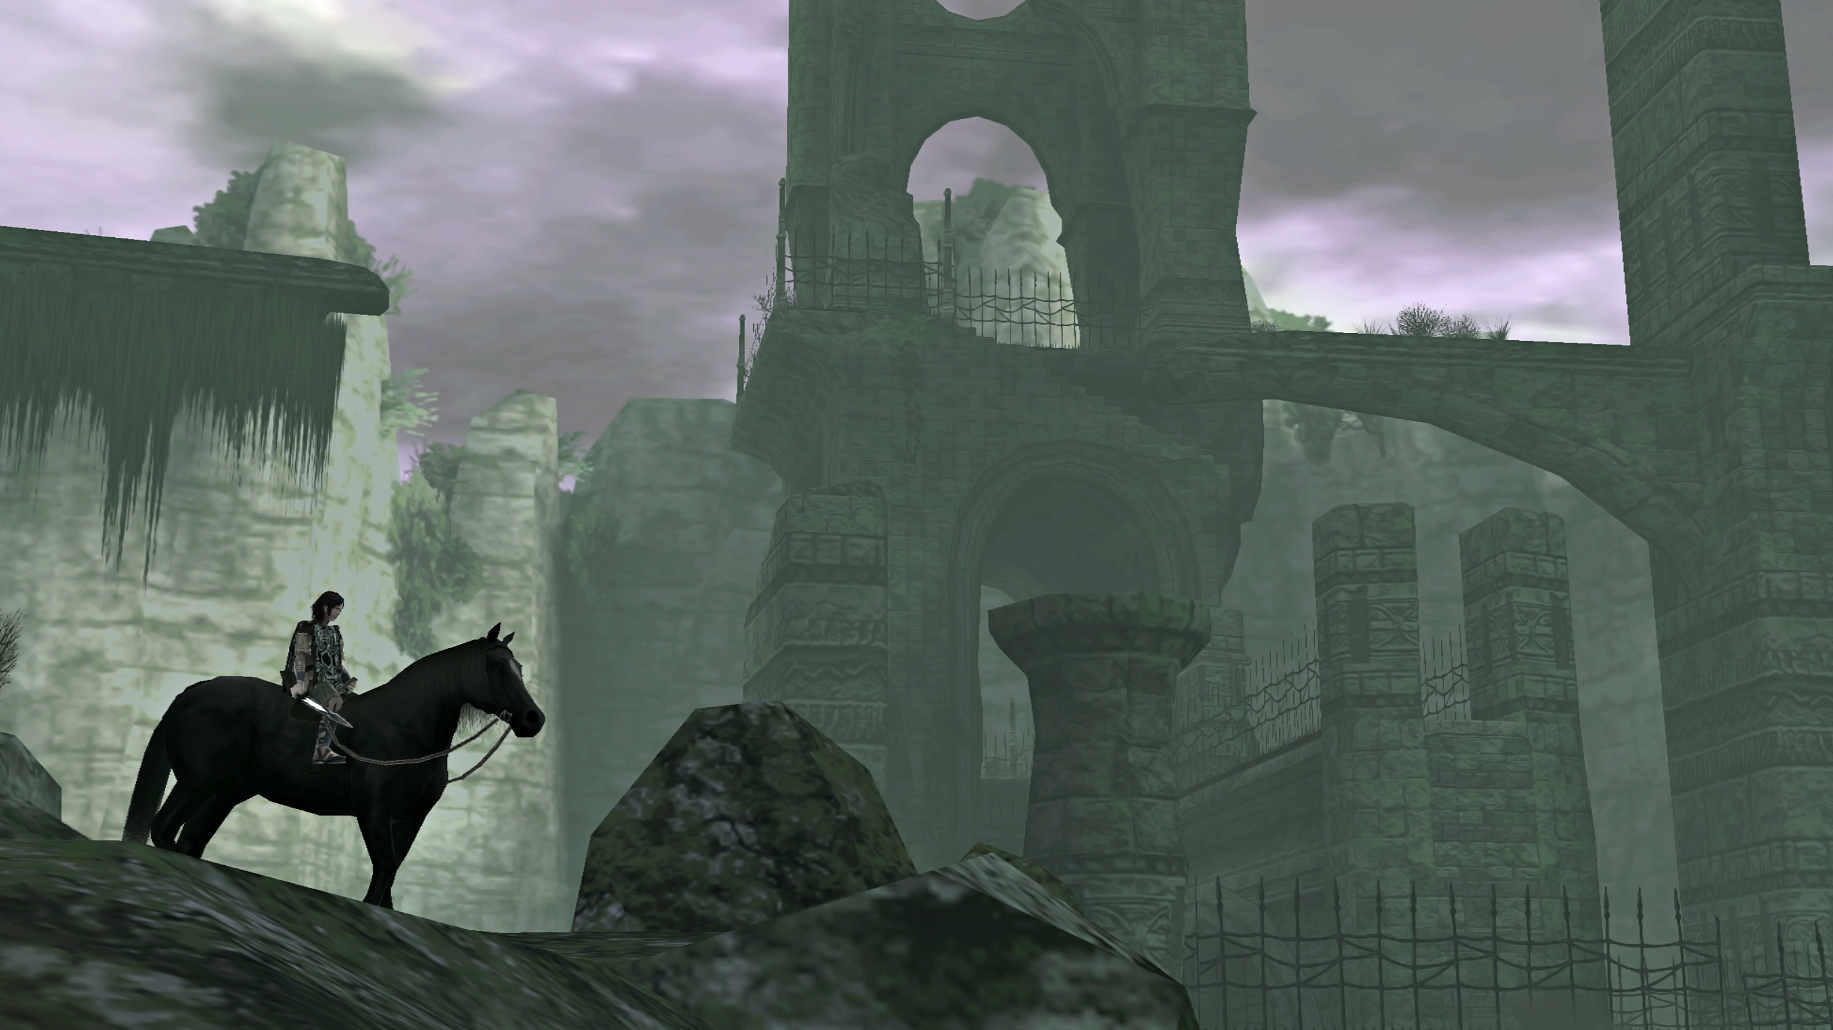 Shadow of the Colossus, Avion 00 Arena (1833x1030)